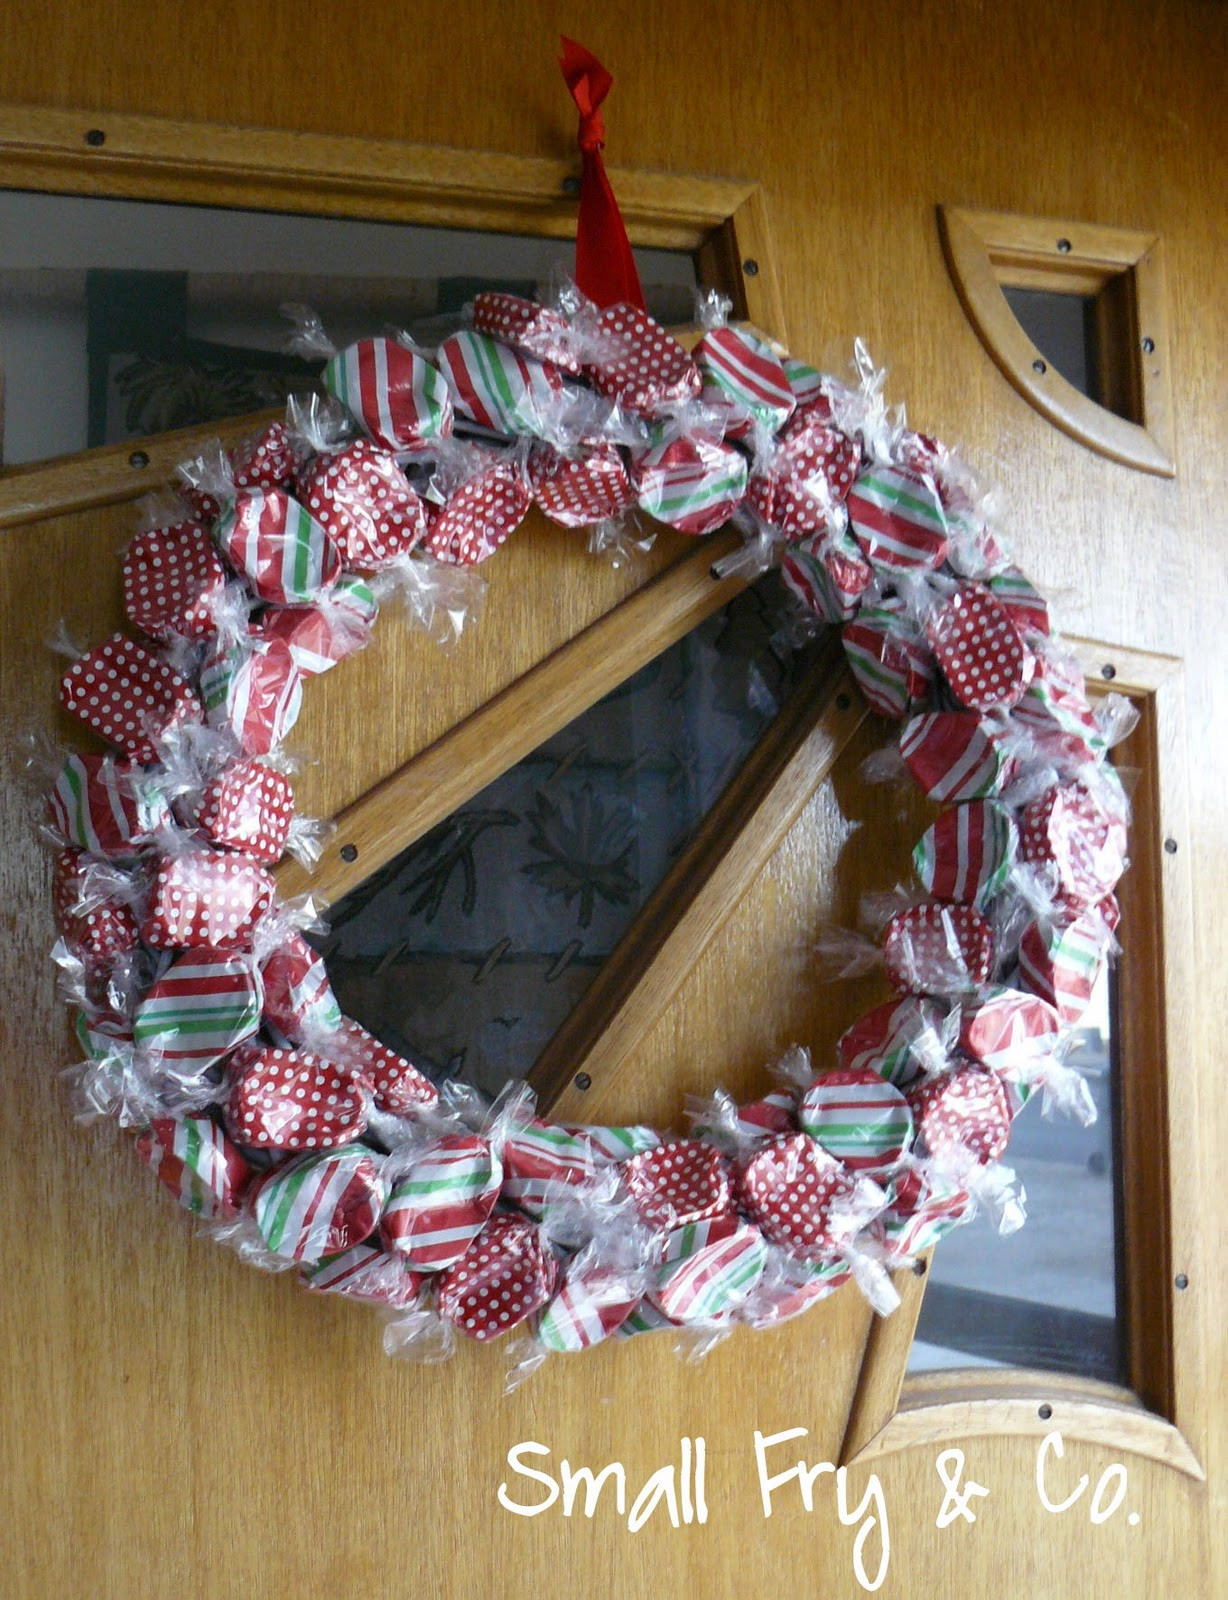 Christmas Candy Wreath  Small Fry & Co Christmas Candy Wreath